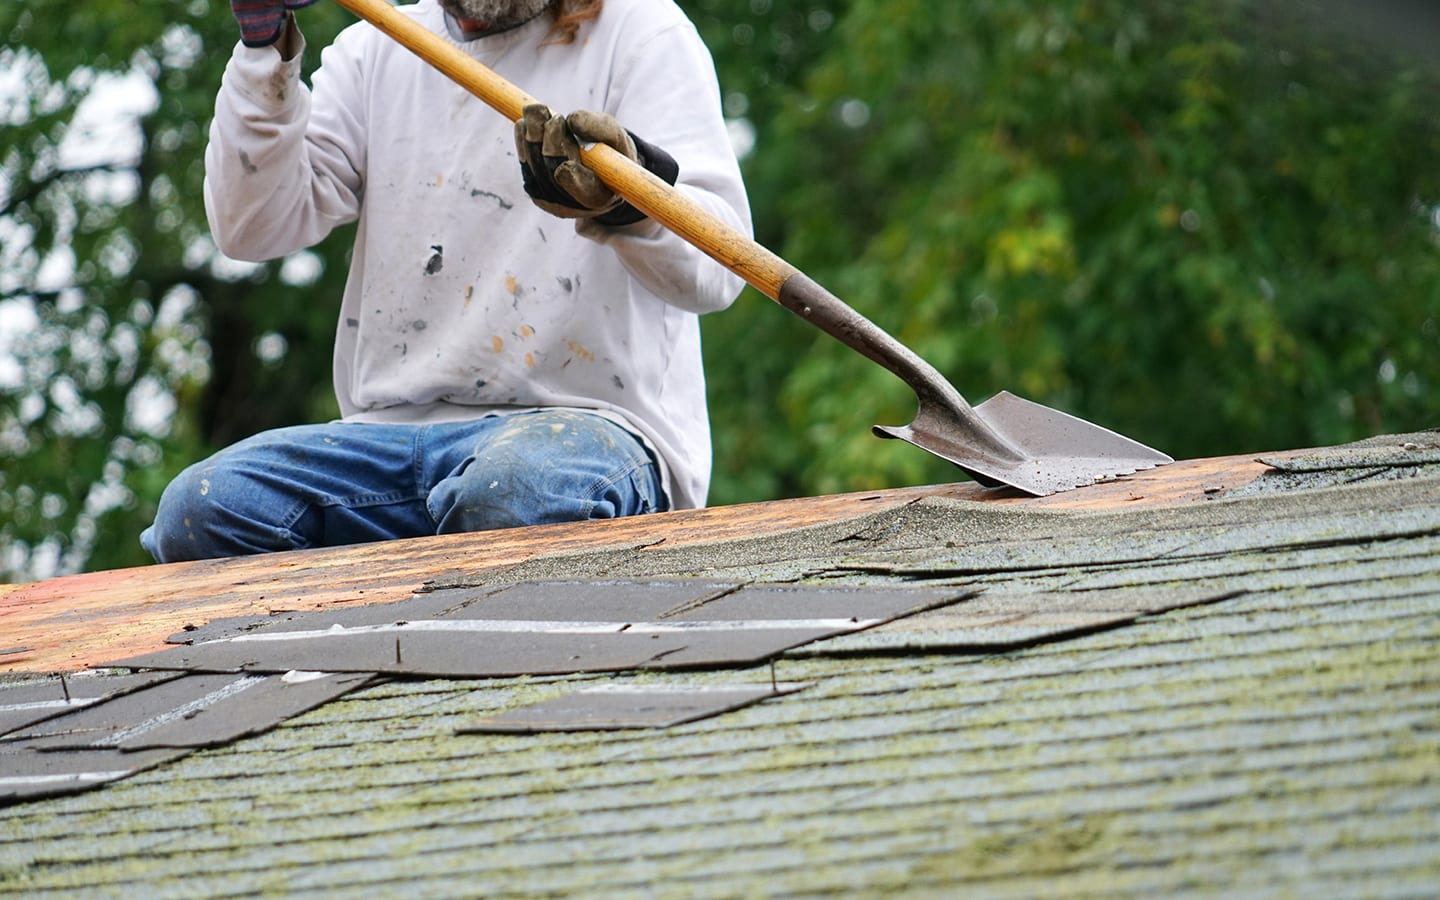 roofing tear off person